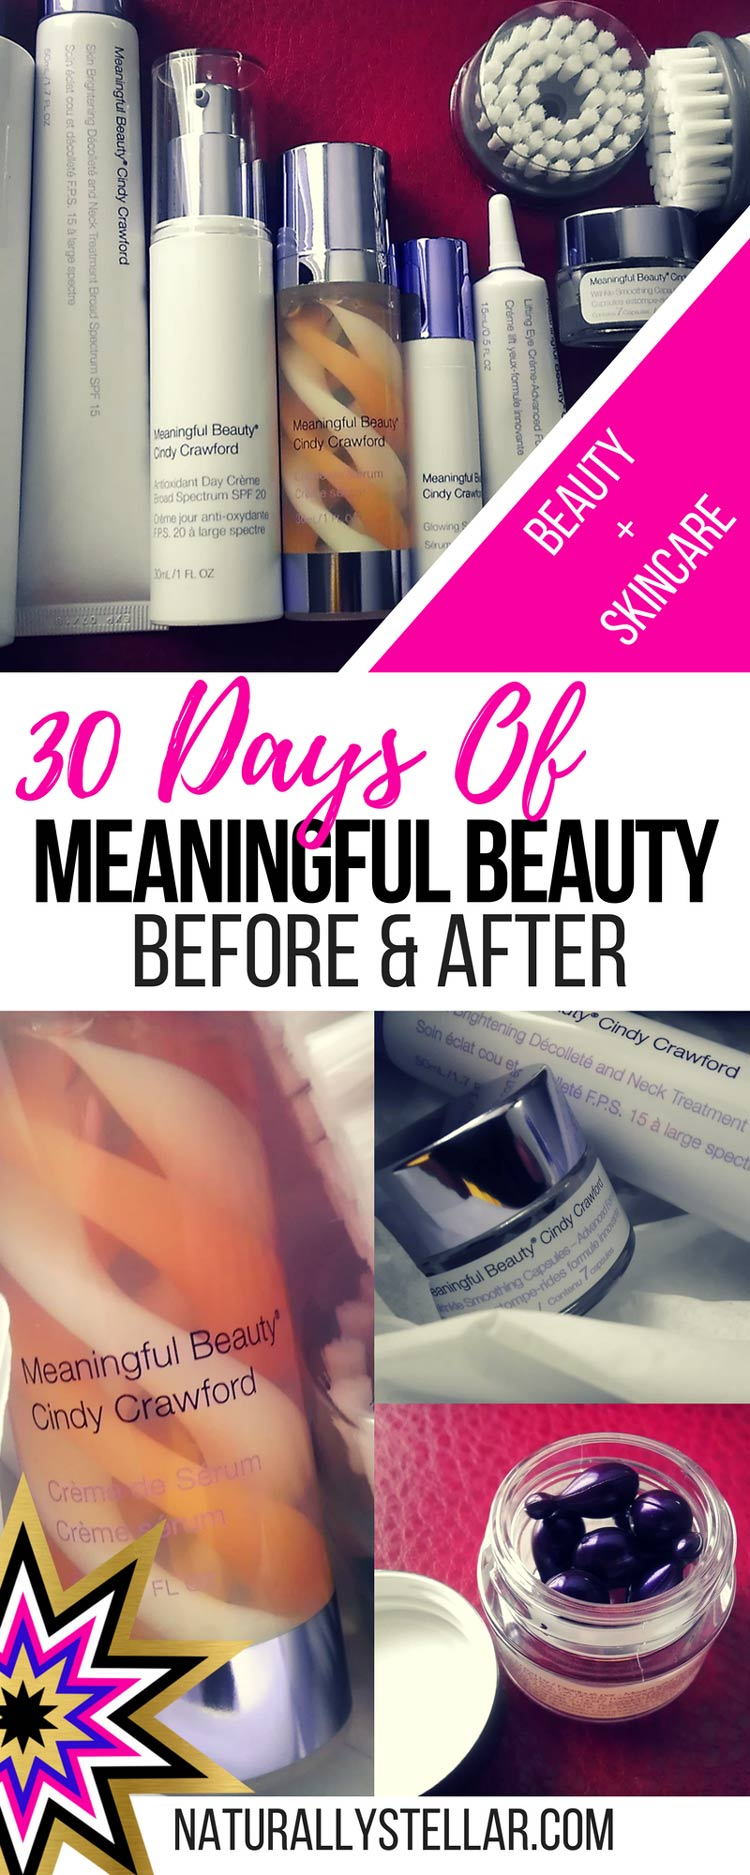 Meaningful Beauty Review - After 30 Days  | Naturally Stellar